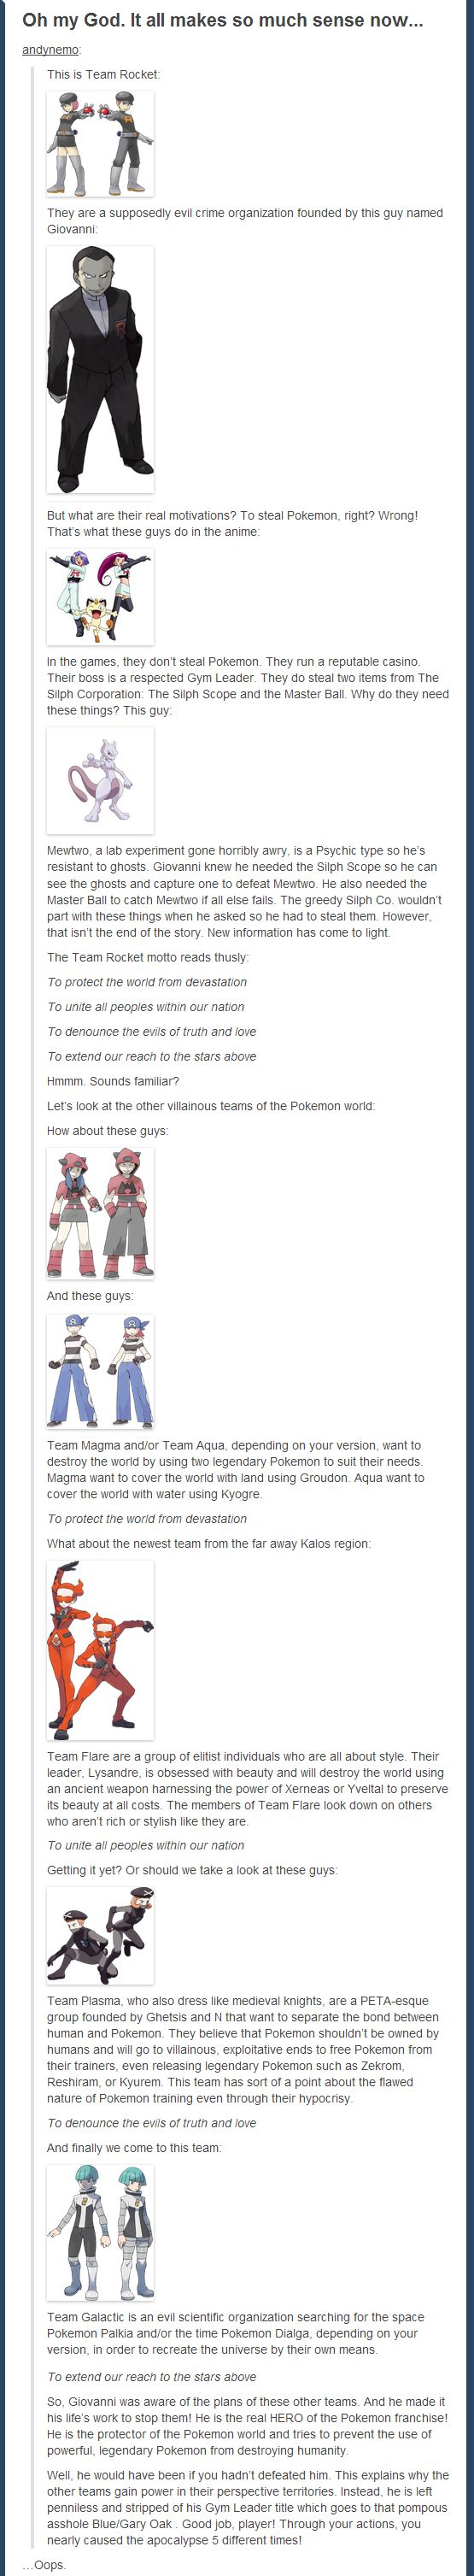 Oops... - Imgur. Erm, never thought of that! Apparently Team Rocket might have been one of the good guys in the game....our bad! hahaha #Pokemon